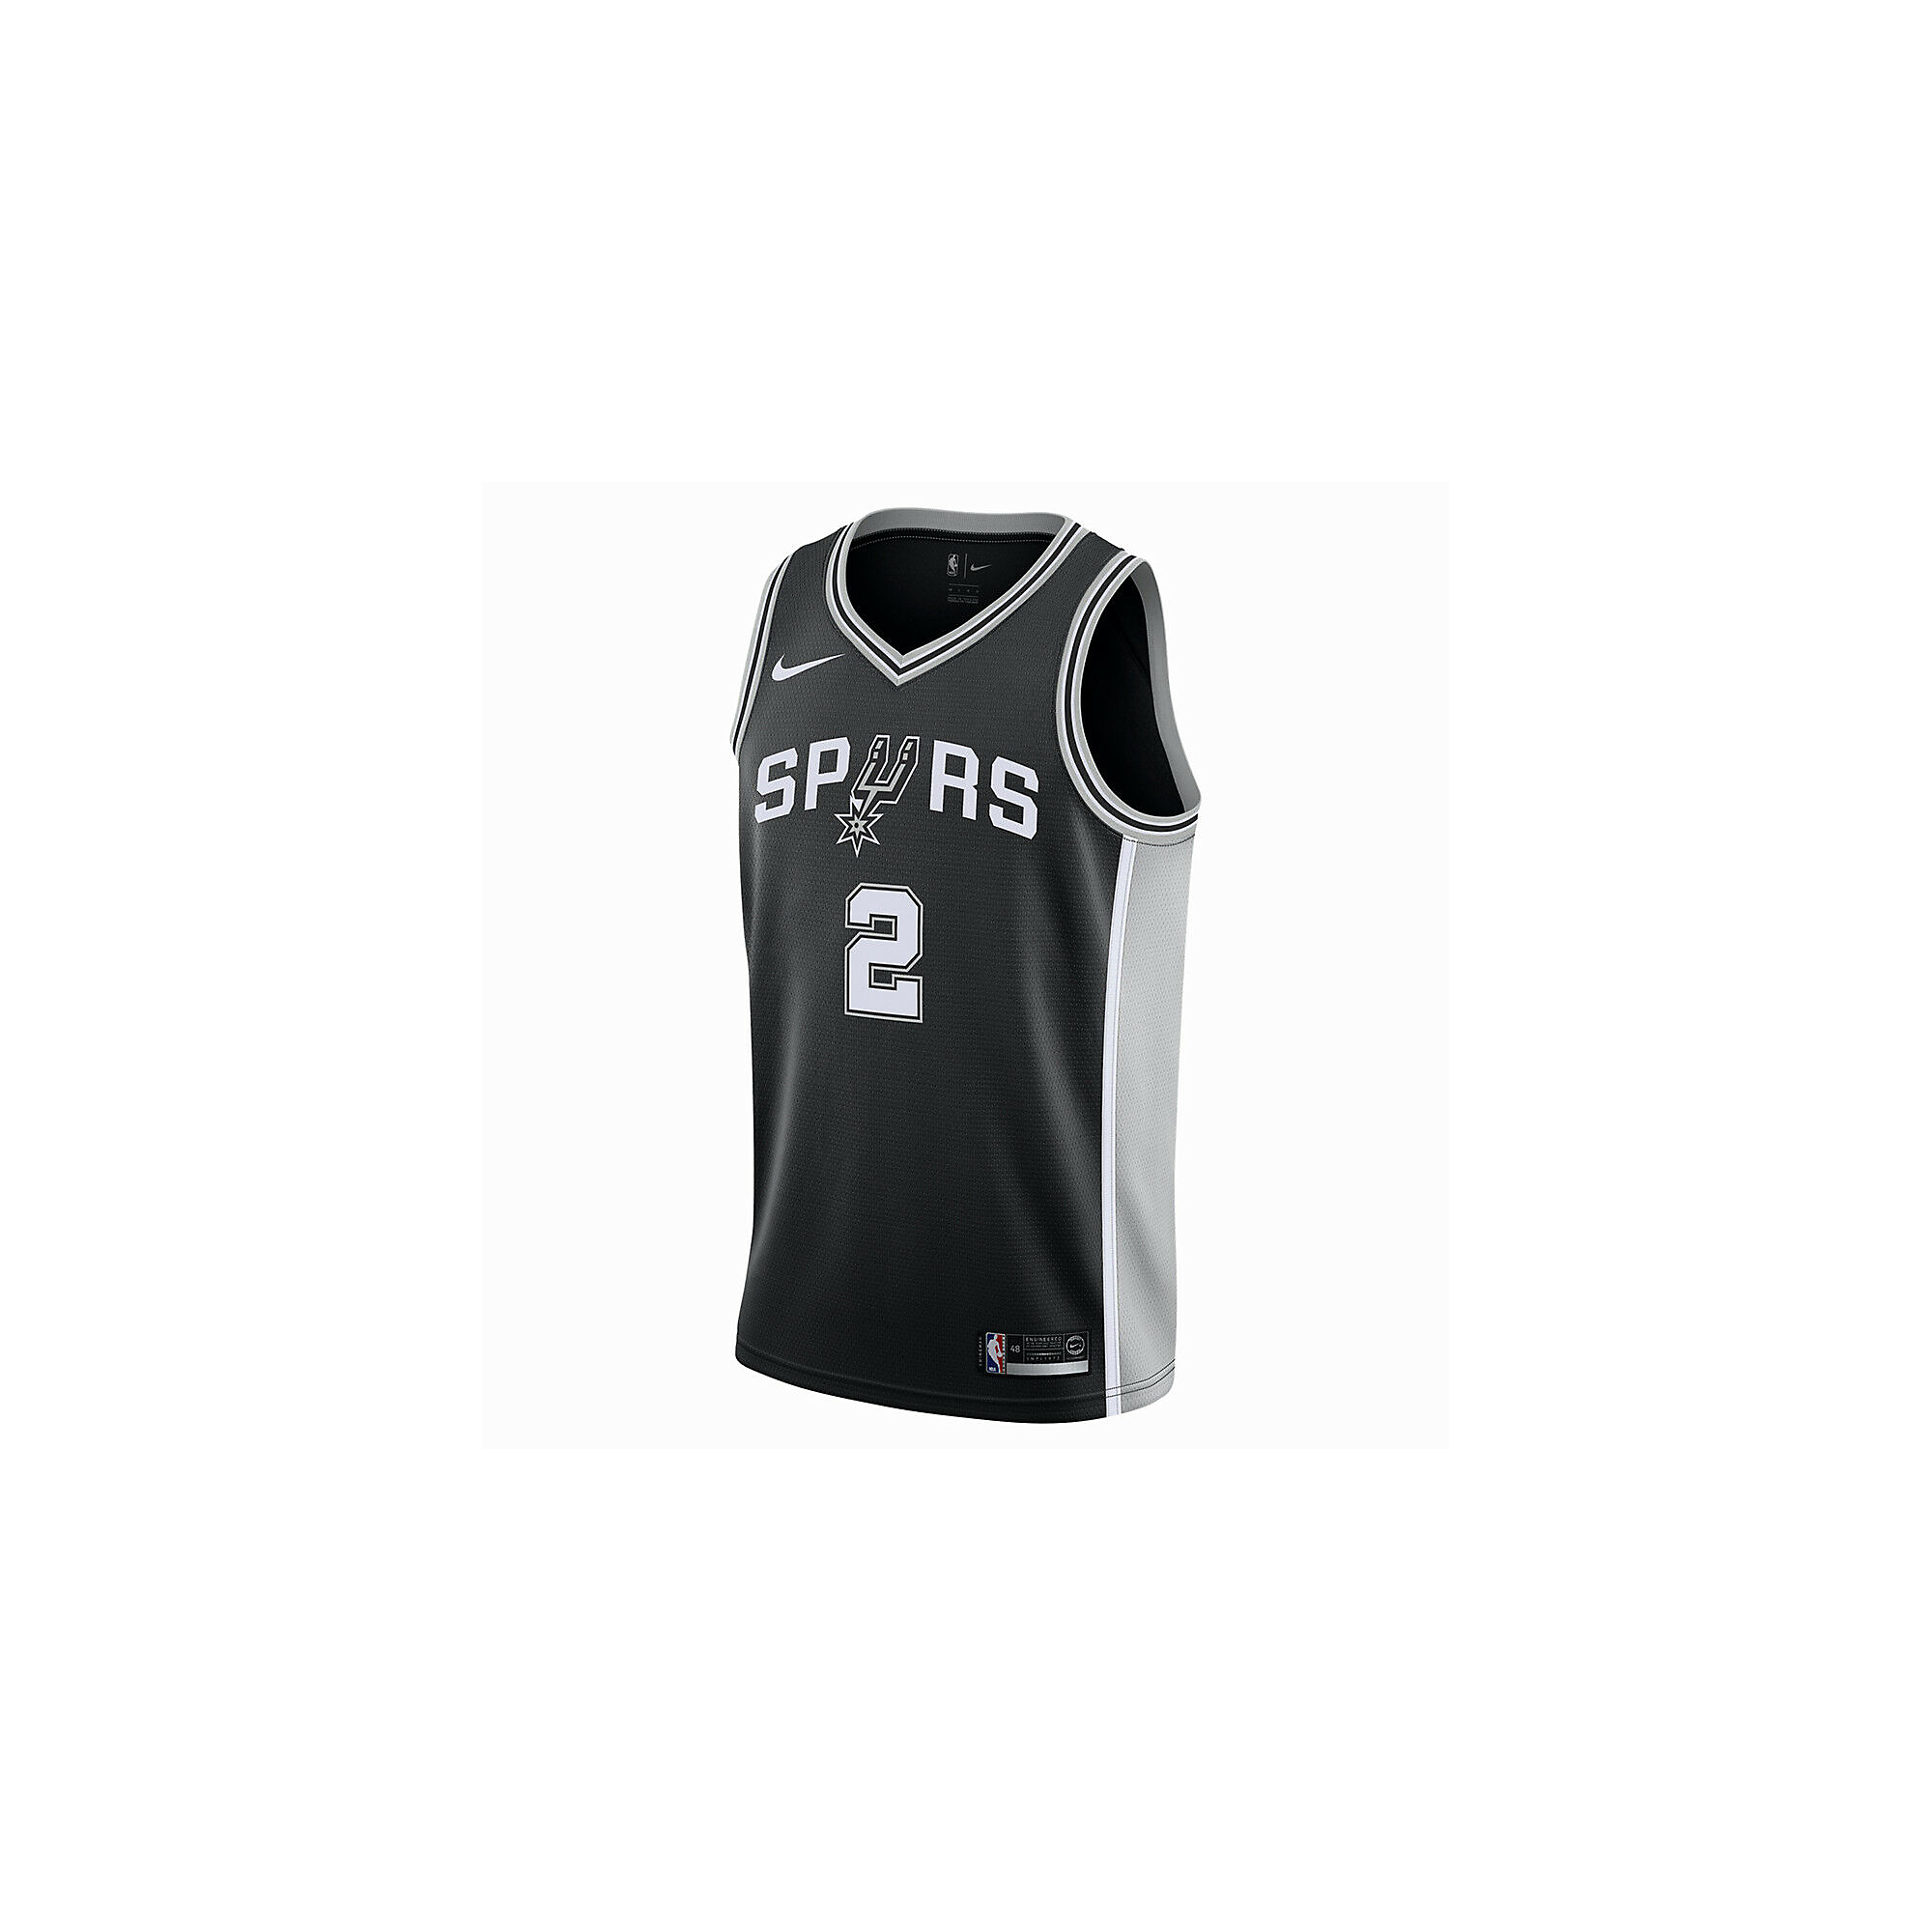 San Antonio Spurs Kawhi Leonard Nike Black Replica Swingman Road Jersey